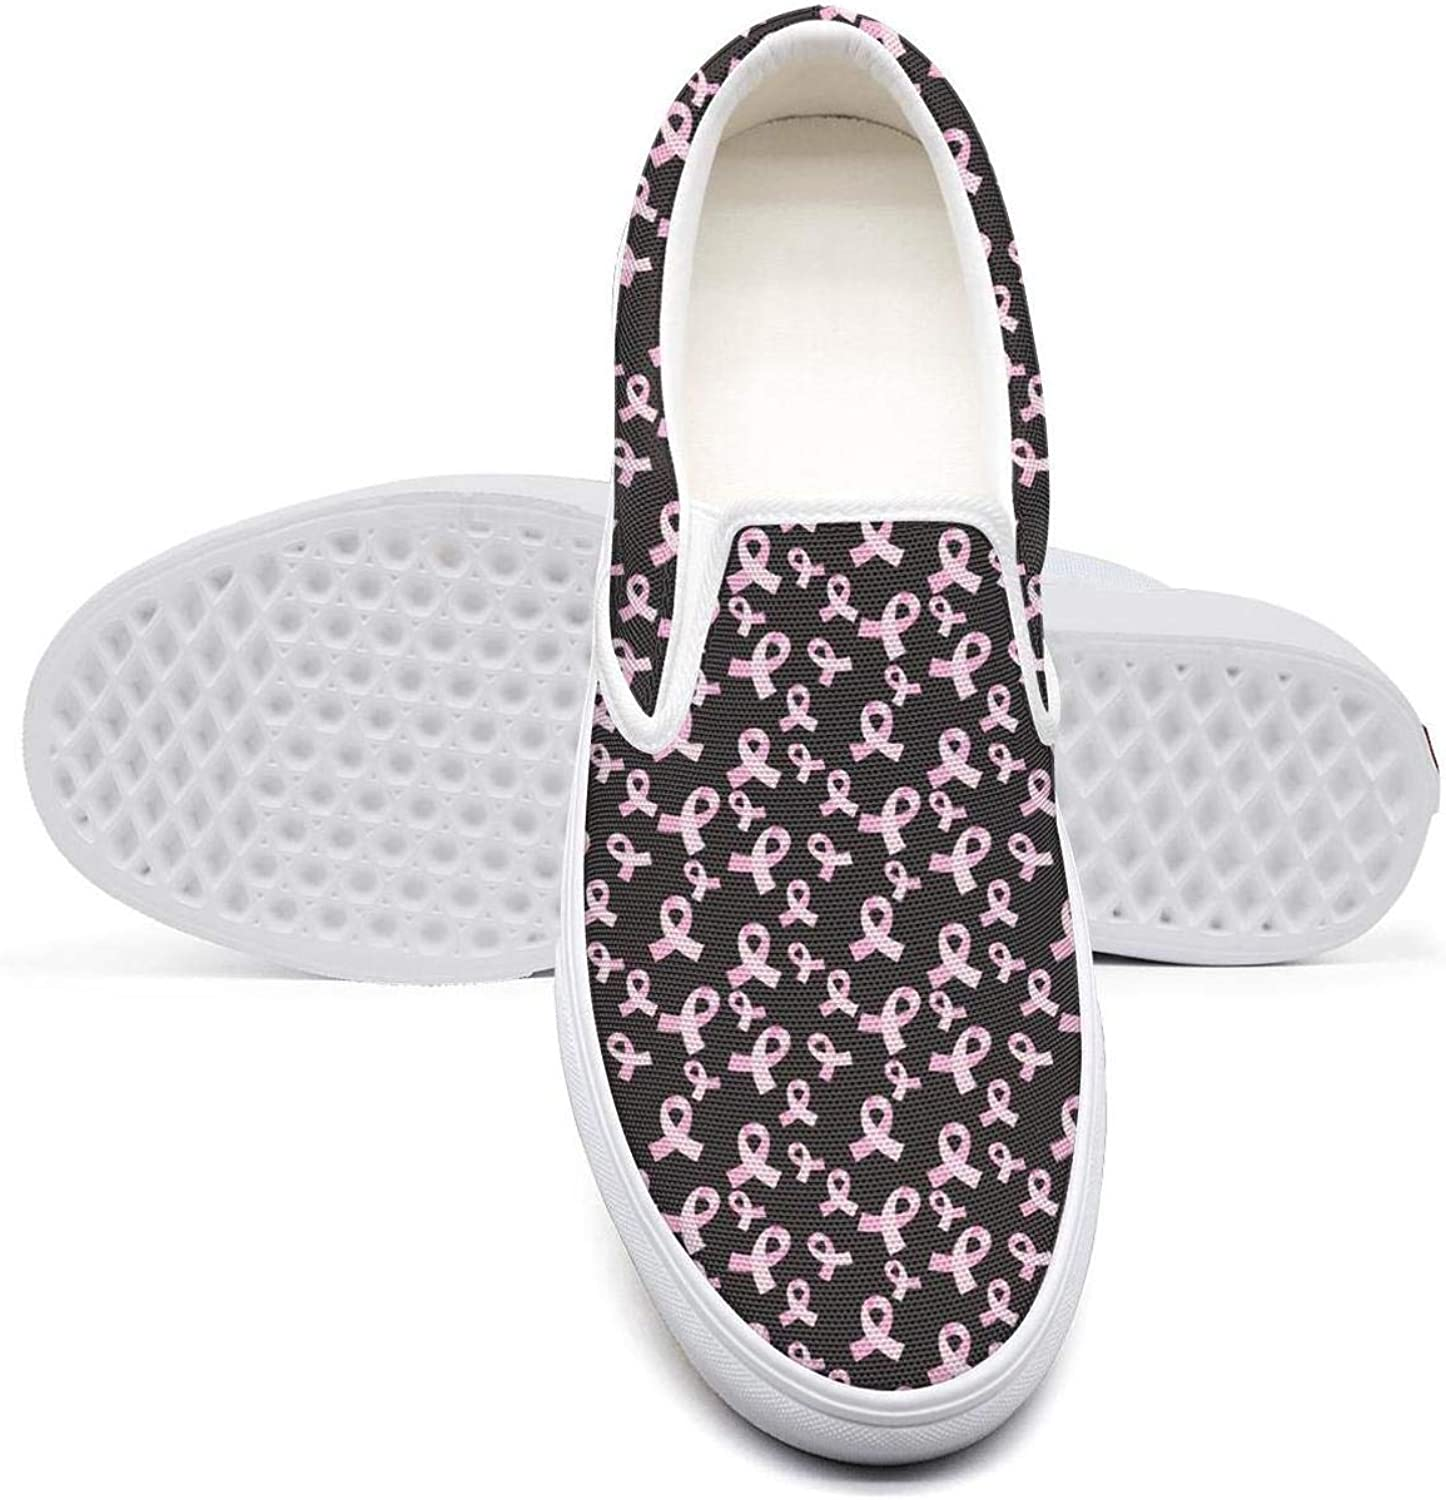 Breast Cancer Background Classic Canvas Shoes Slip On Skate Sneakers Womens Fashion Print Cool Durable Shoe